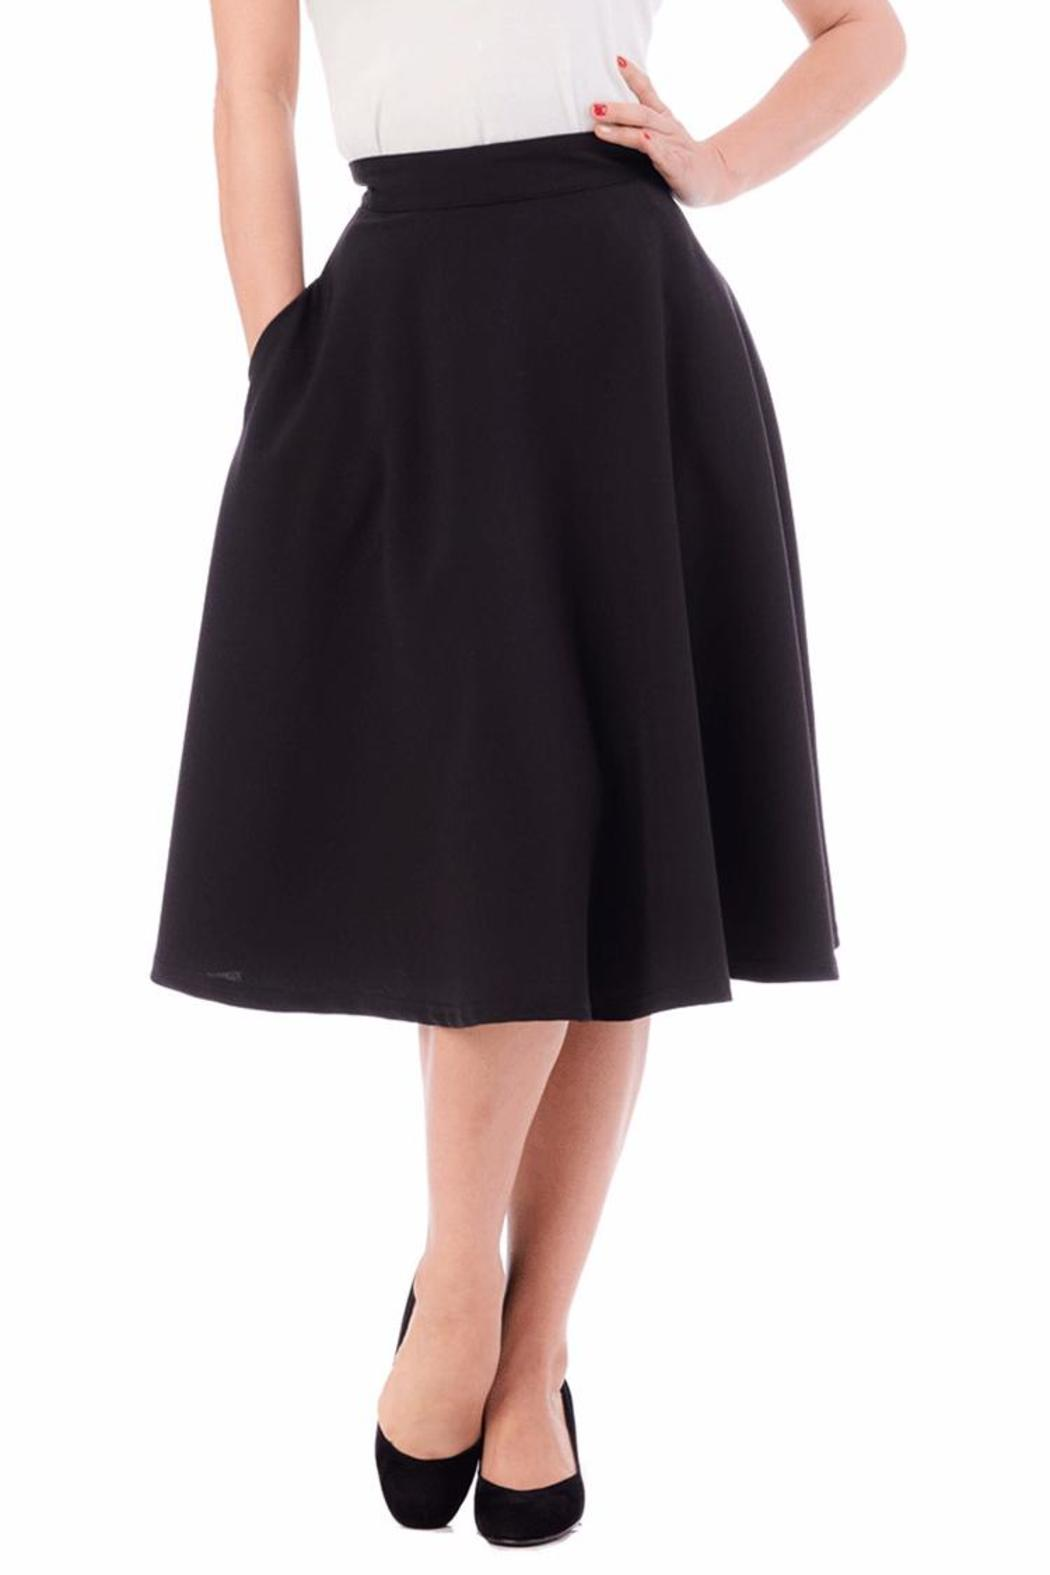 Steady Clothing High-Waist Circle Skirt - Front Cropped Image